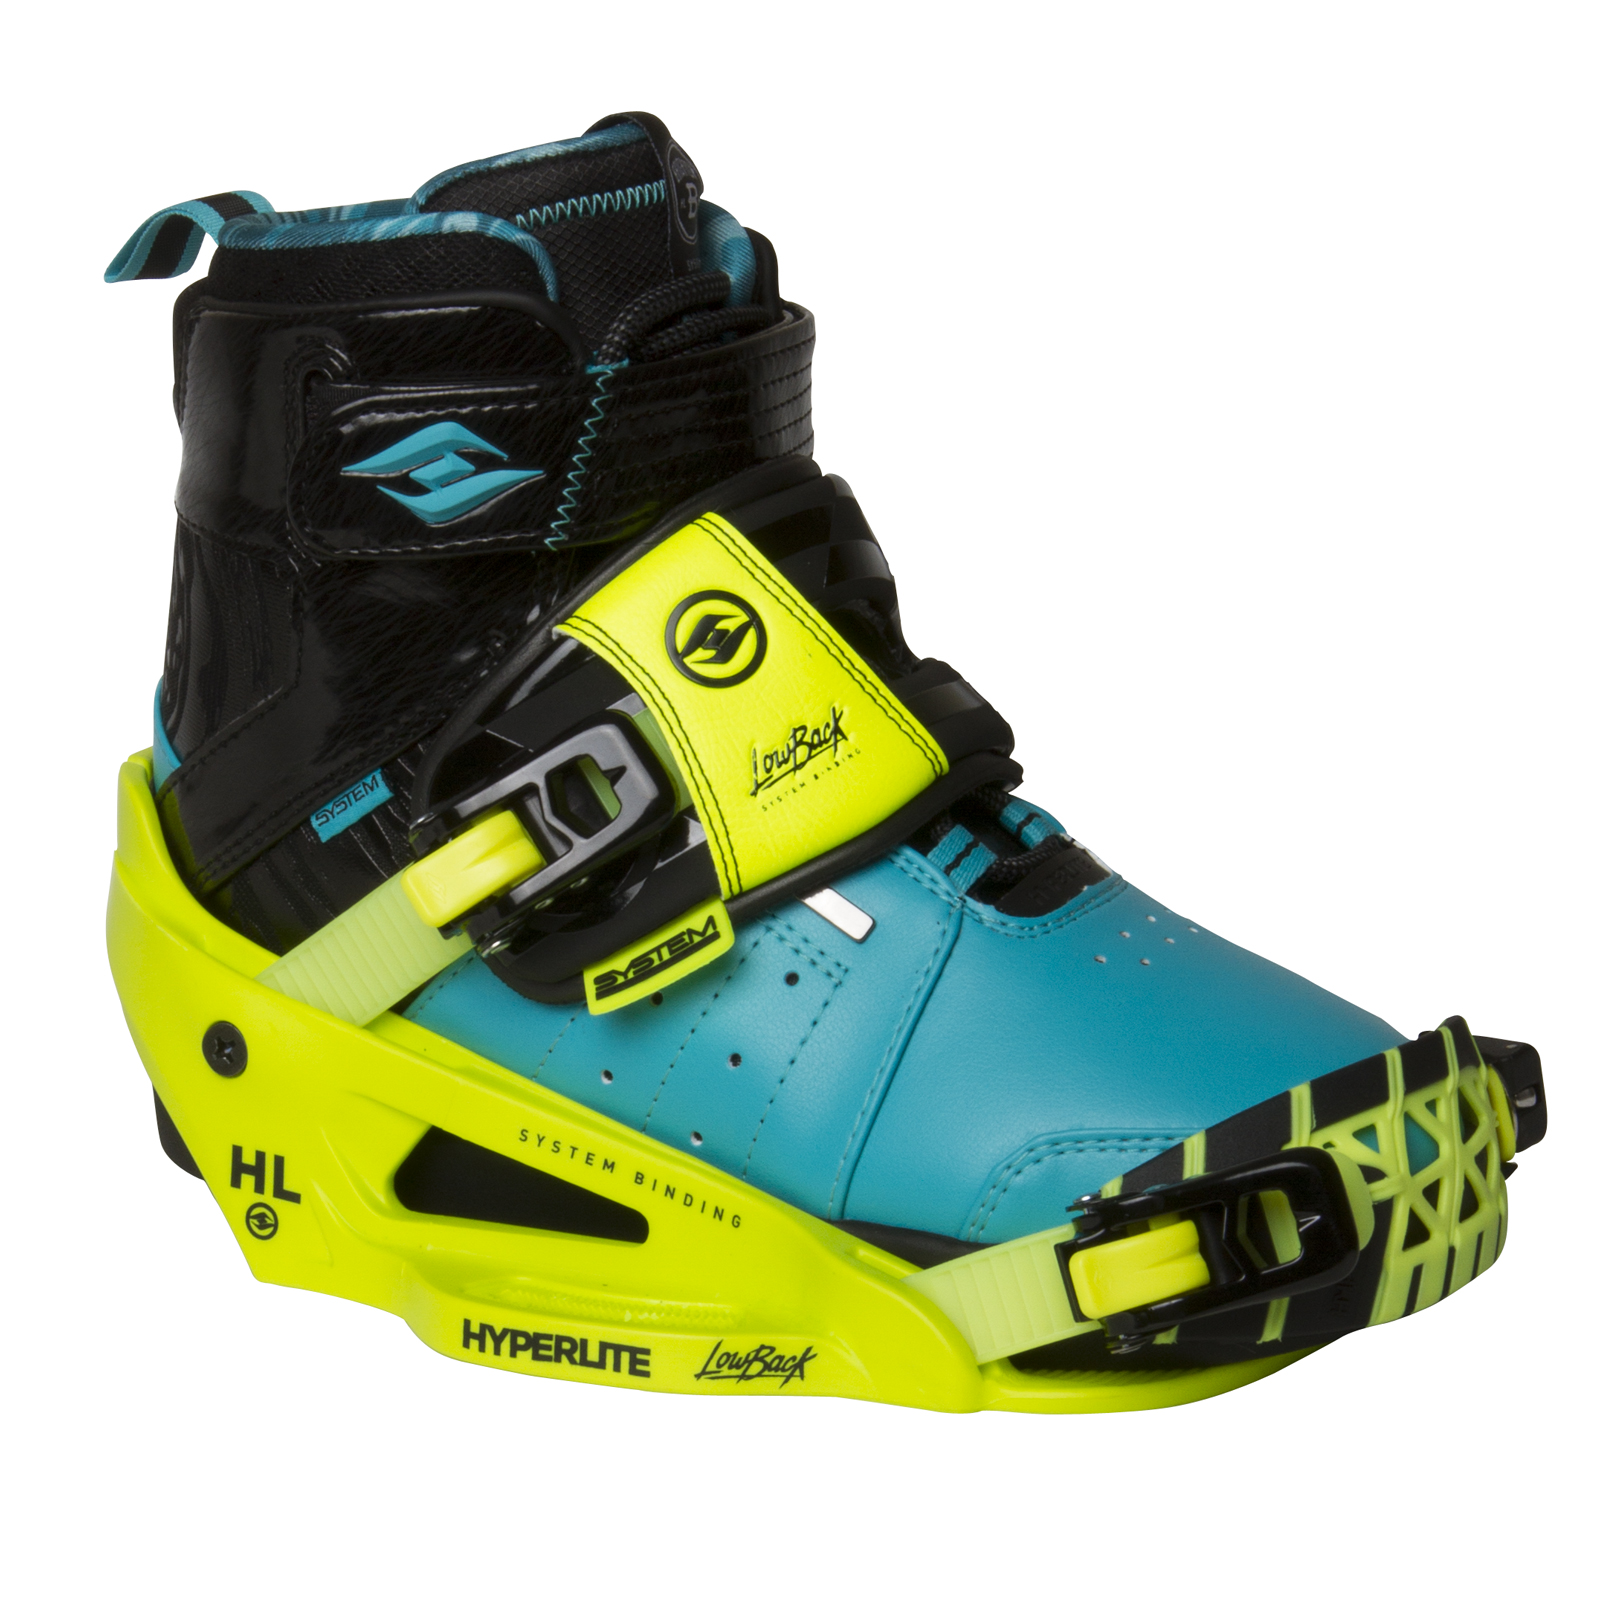 BRIGHTON SYSTEM BOOT W/SYSTEM LOWBACK YELLOW HYPERLITE 2017